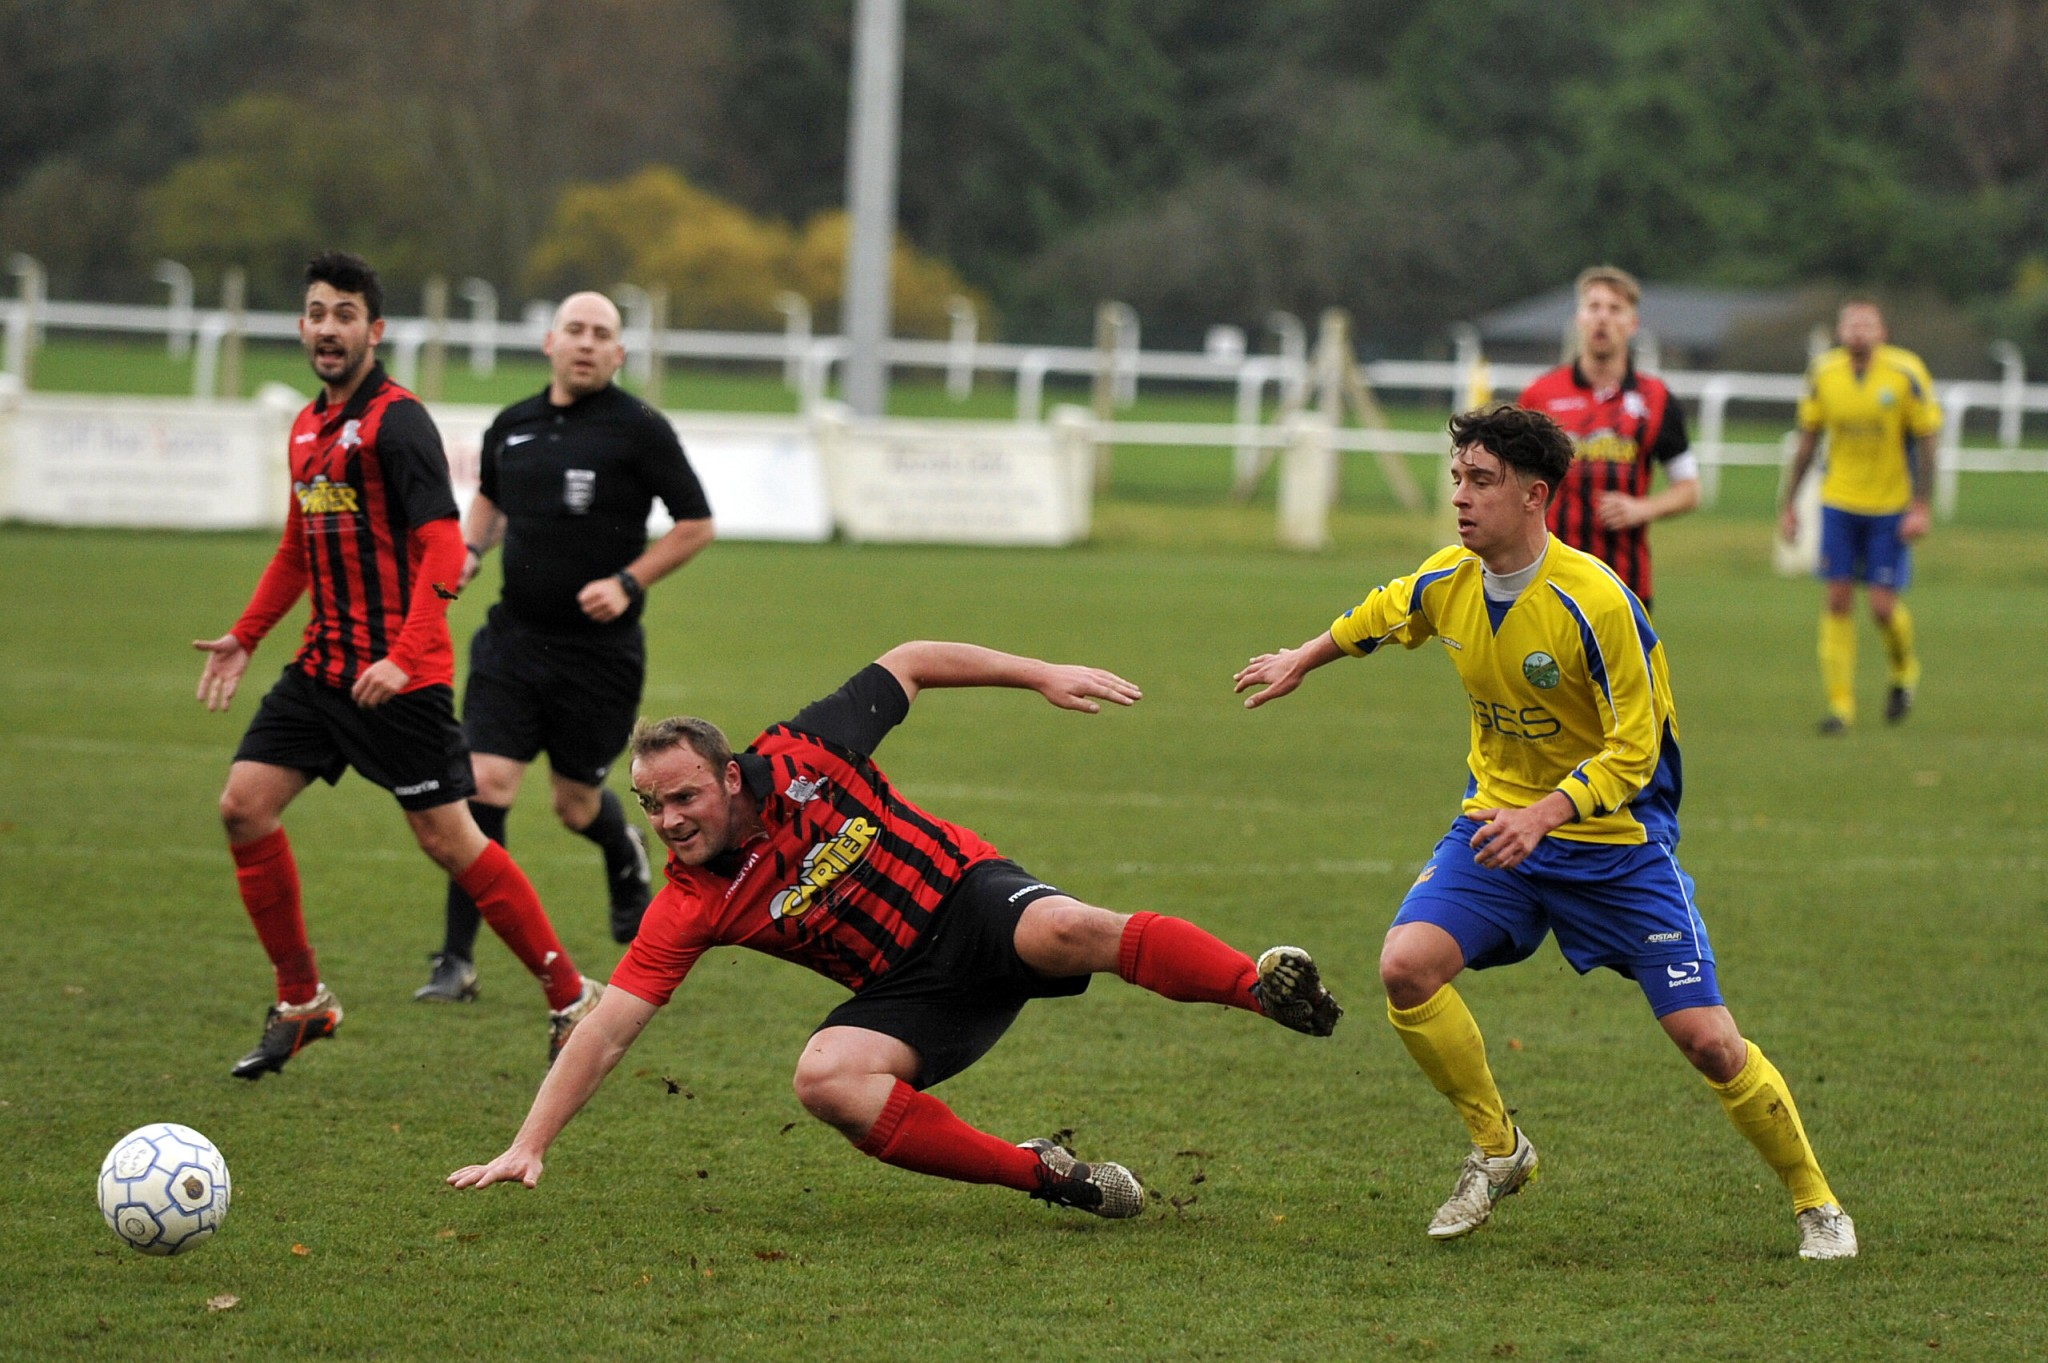 Hellenic Premier: Samir Regragui double for Ascot United and round up